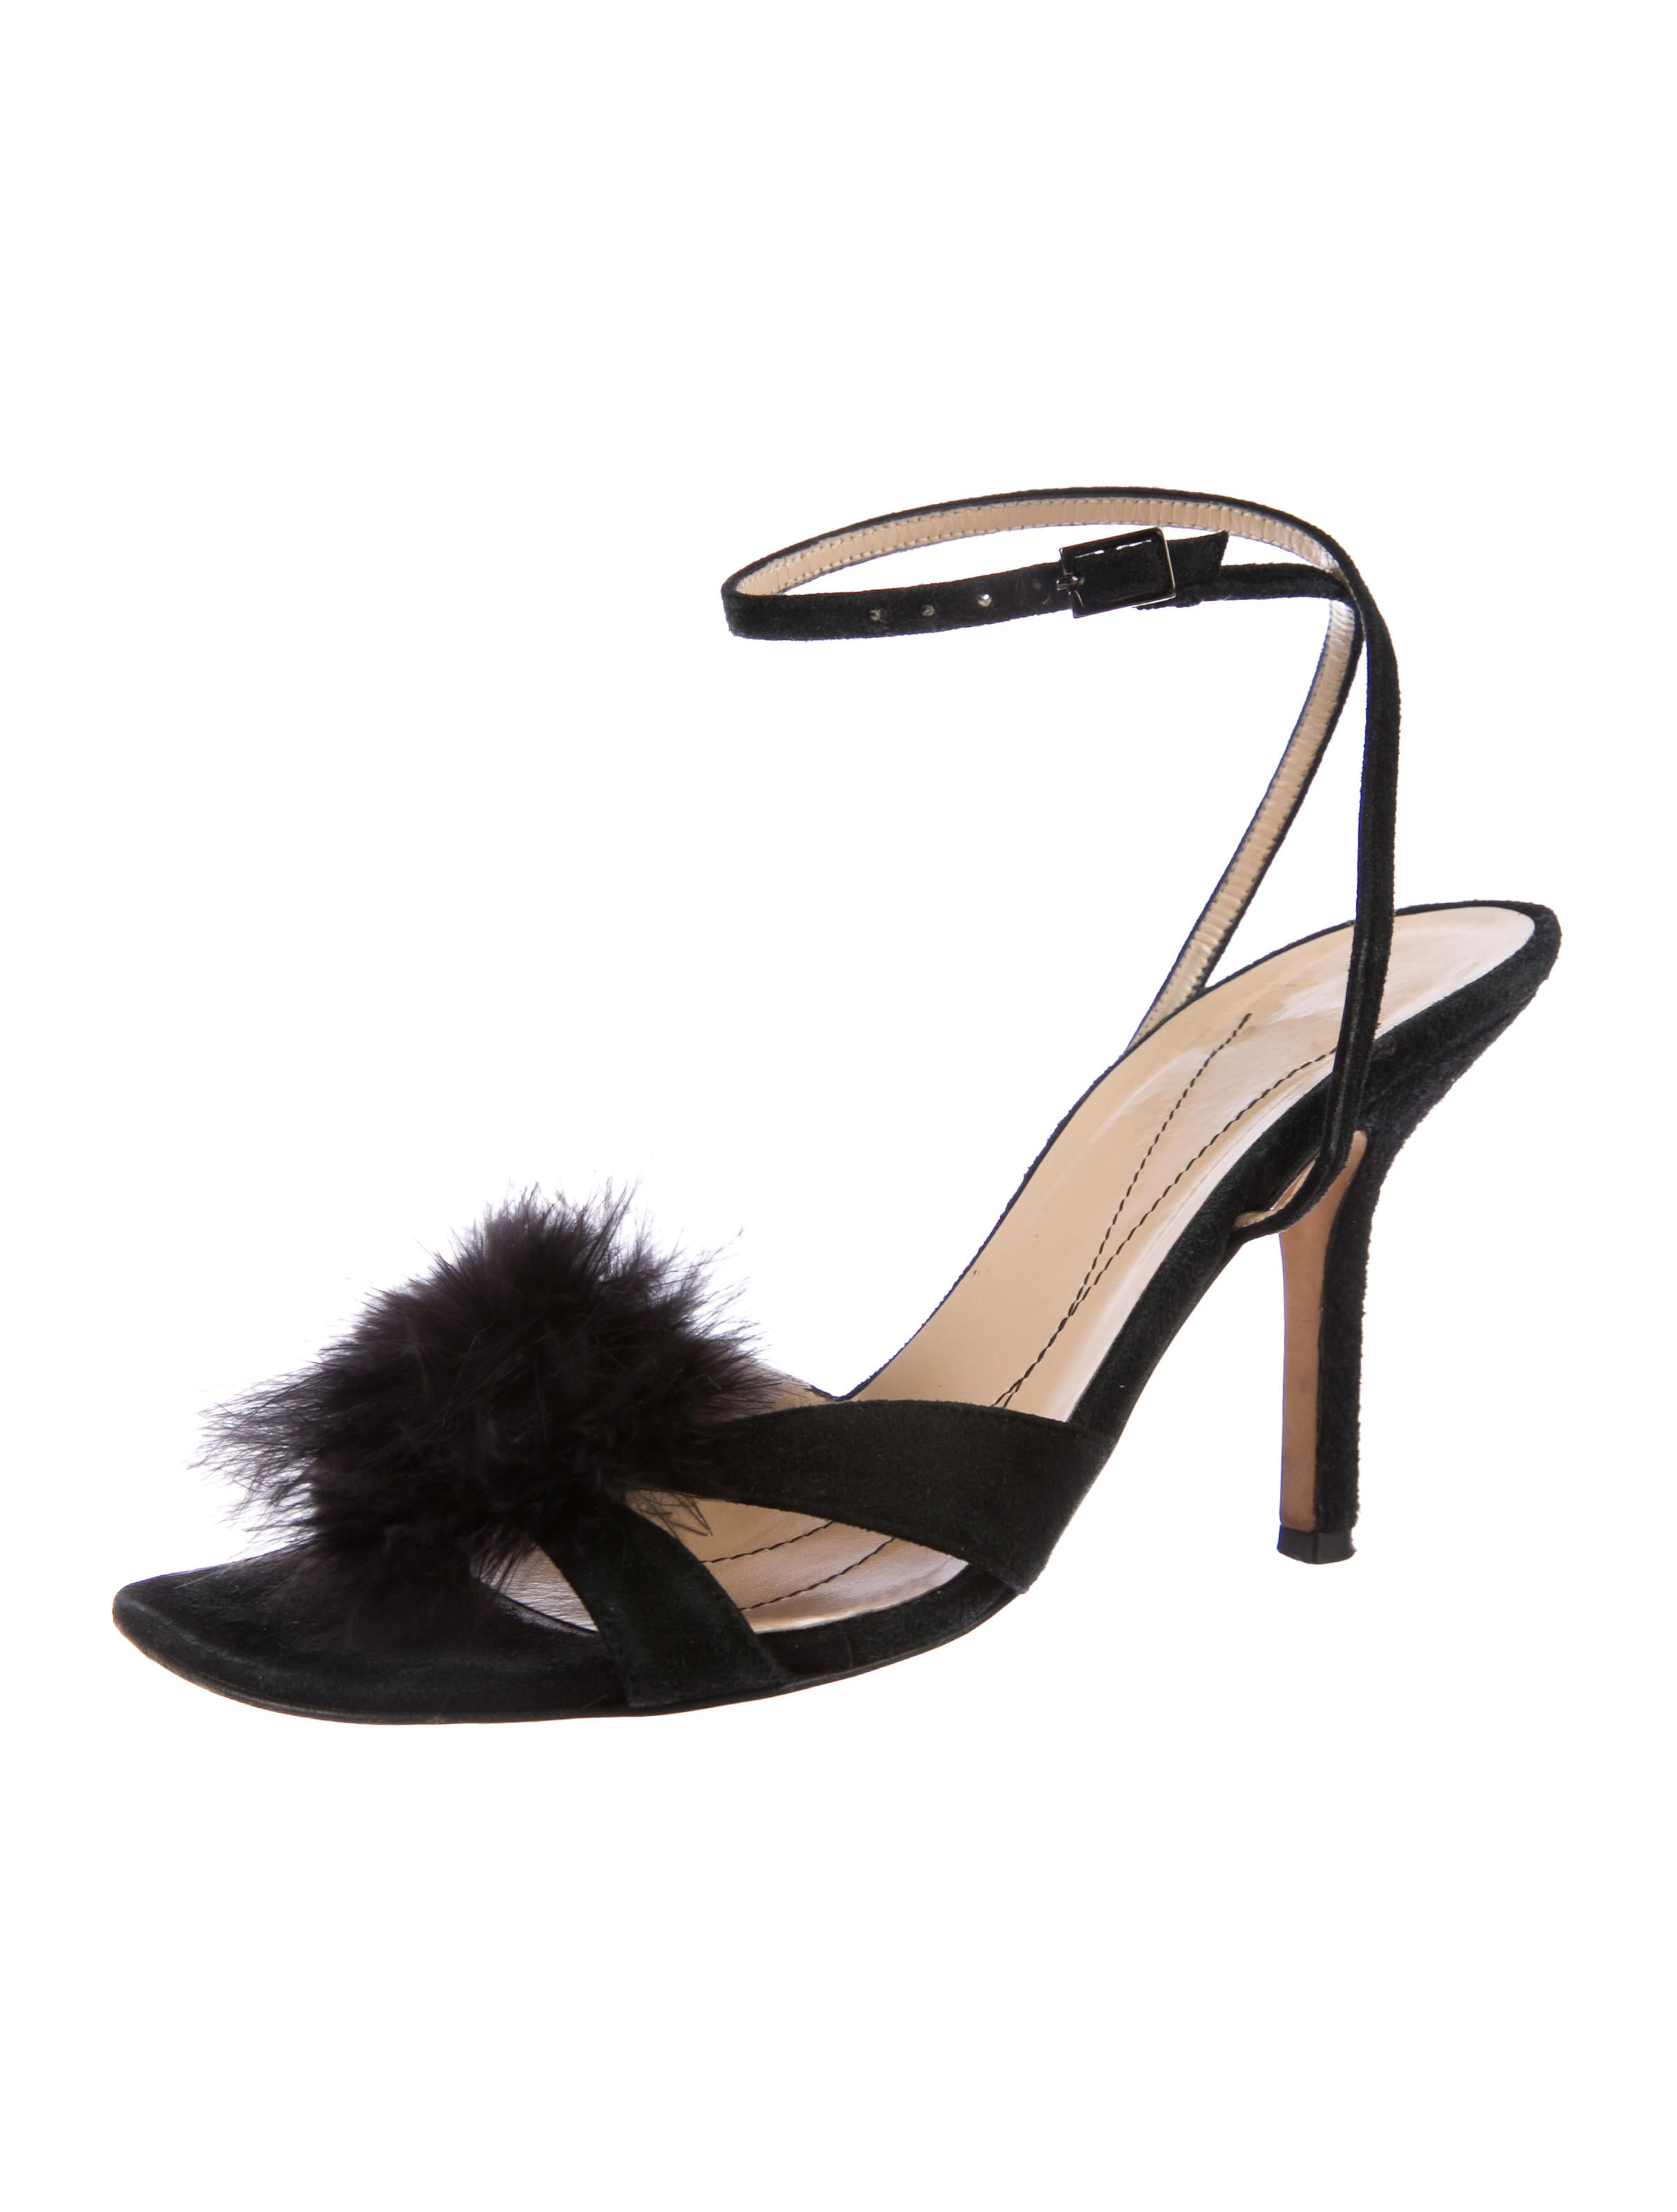 2015 new clearance online amazon Kate Spade New York Feather-Accented Suede Sandals cheap sale 2015 GejeJ00IH